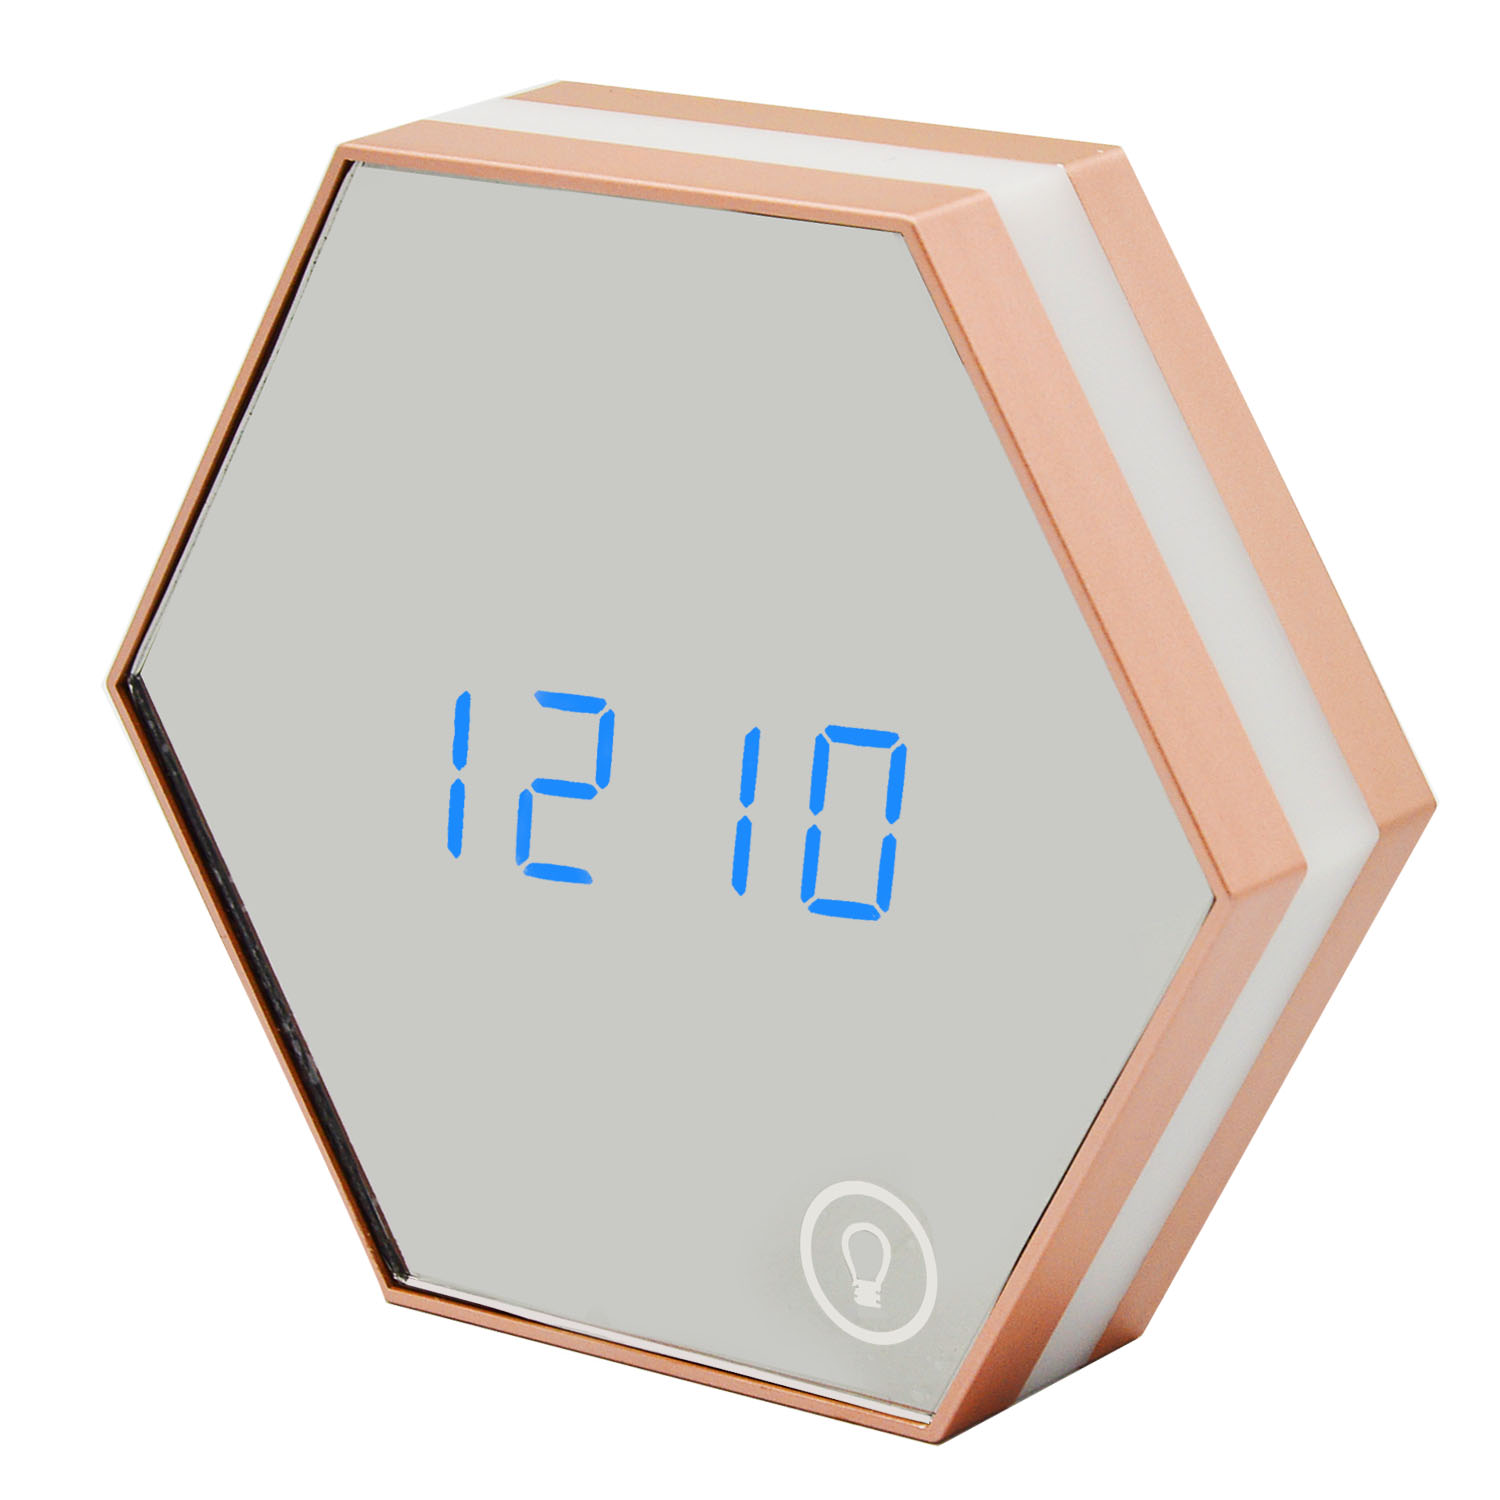 Toko Multifunction Electronic Alarm Clock Portable Hexagon Digital Mirror Alarm Clock Rechargeable Touch Led Night Light Wall Lamp Display Time Temperature For Desk Living Room Children *d*lt Bedroom Champagne Color Intl Terlengkap